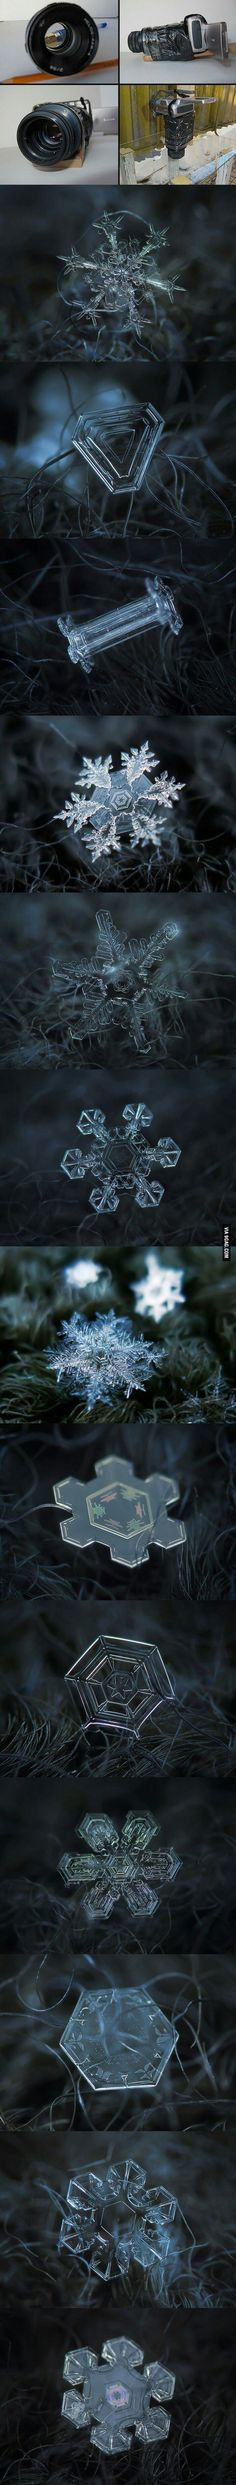 These amazing snowflake photographs were taken by Alexey Kljatov of Russia. This technique is so inexpensive that you can probably try it at home.